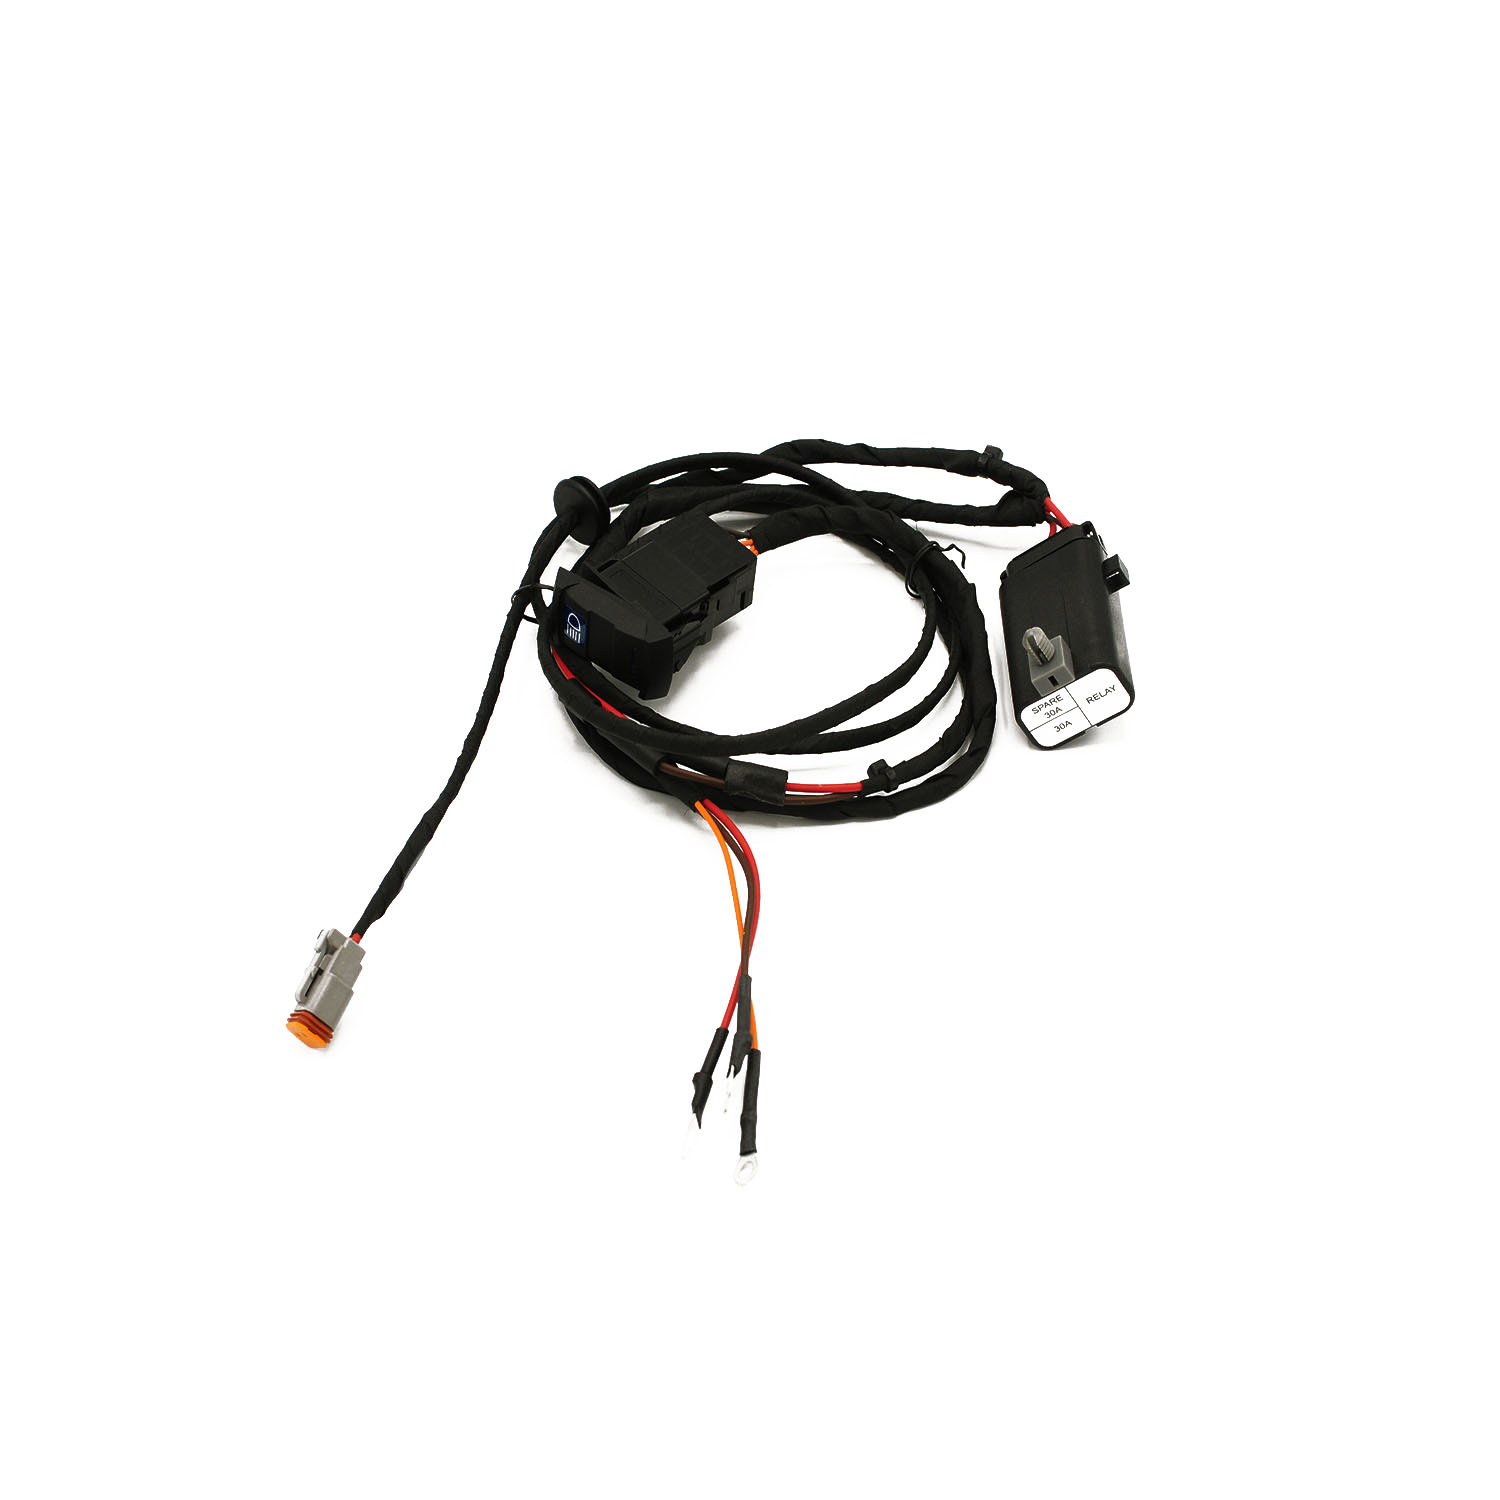 off road atv jeep led light bar wiring harness led lightbar harness | polaris general polaris rzr led light bar wiring harness